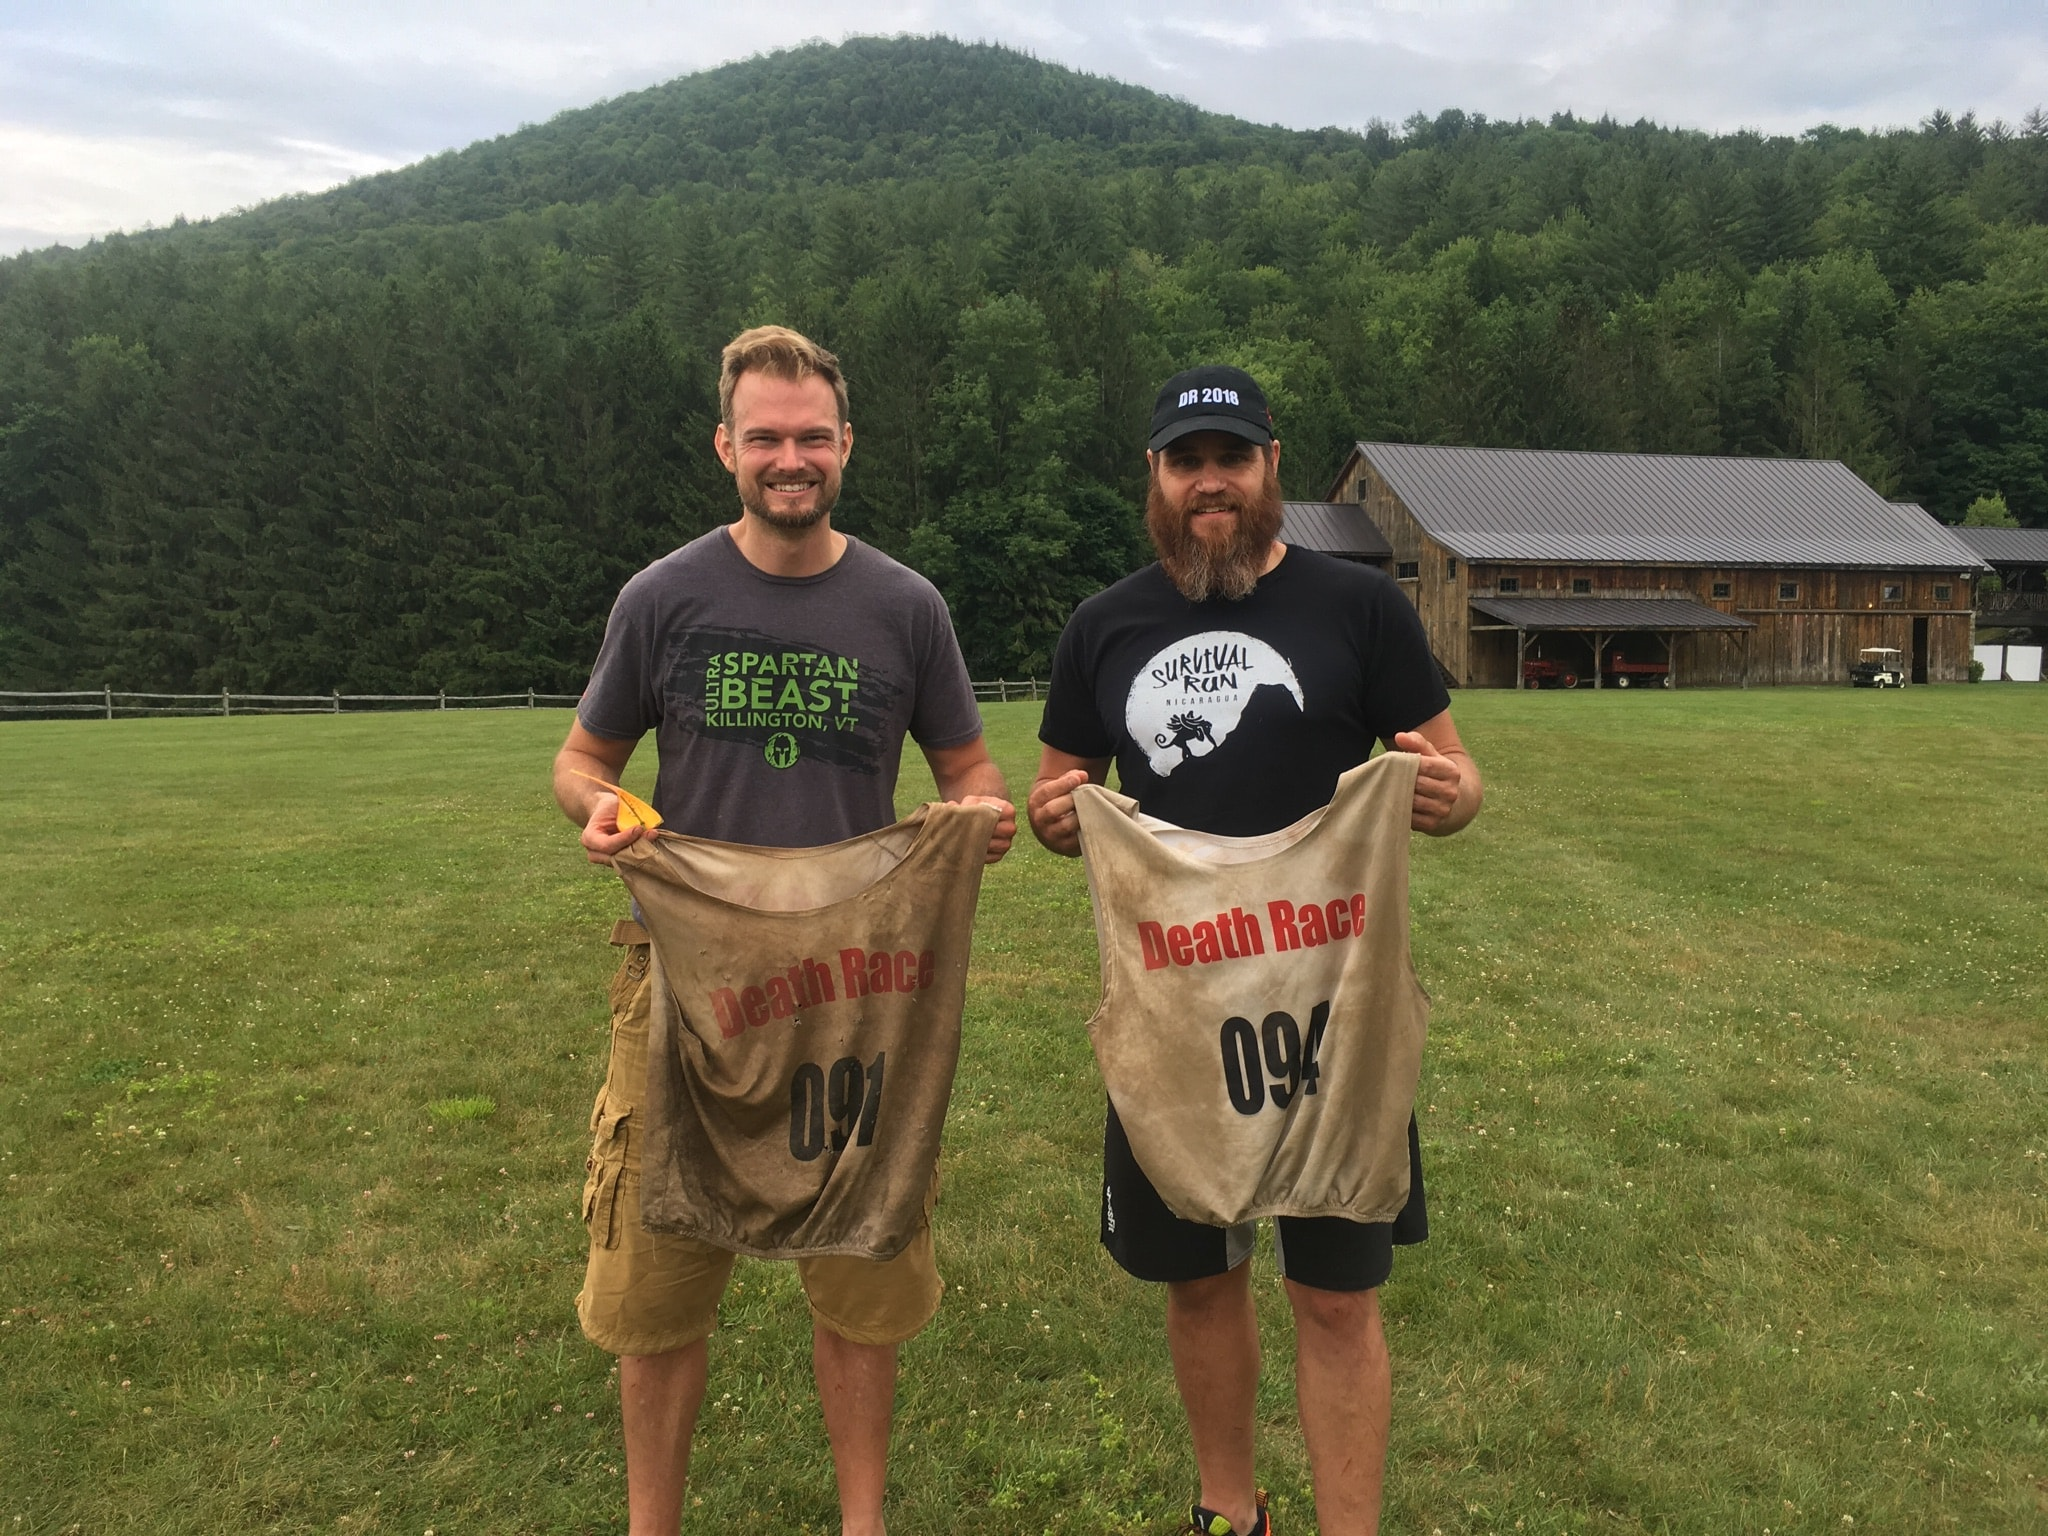 Matt and I with our 2018 bibs